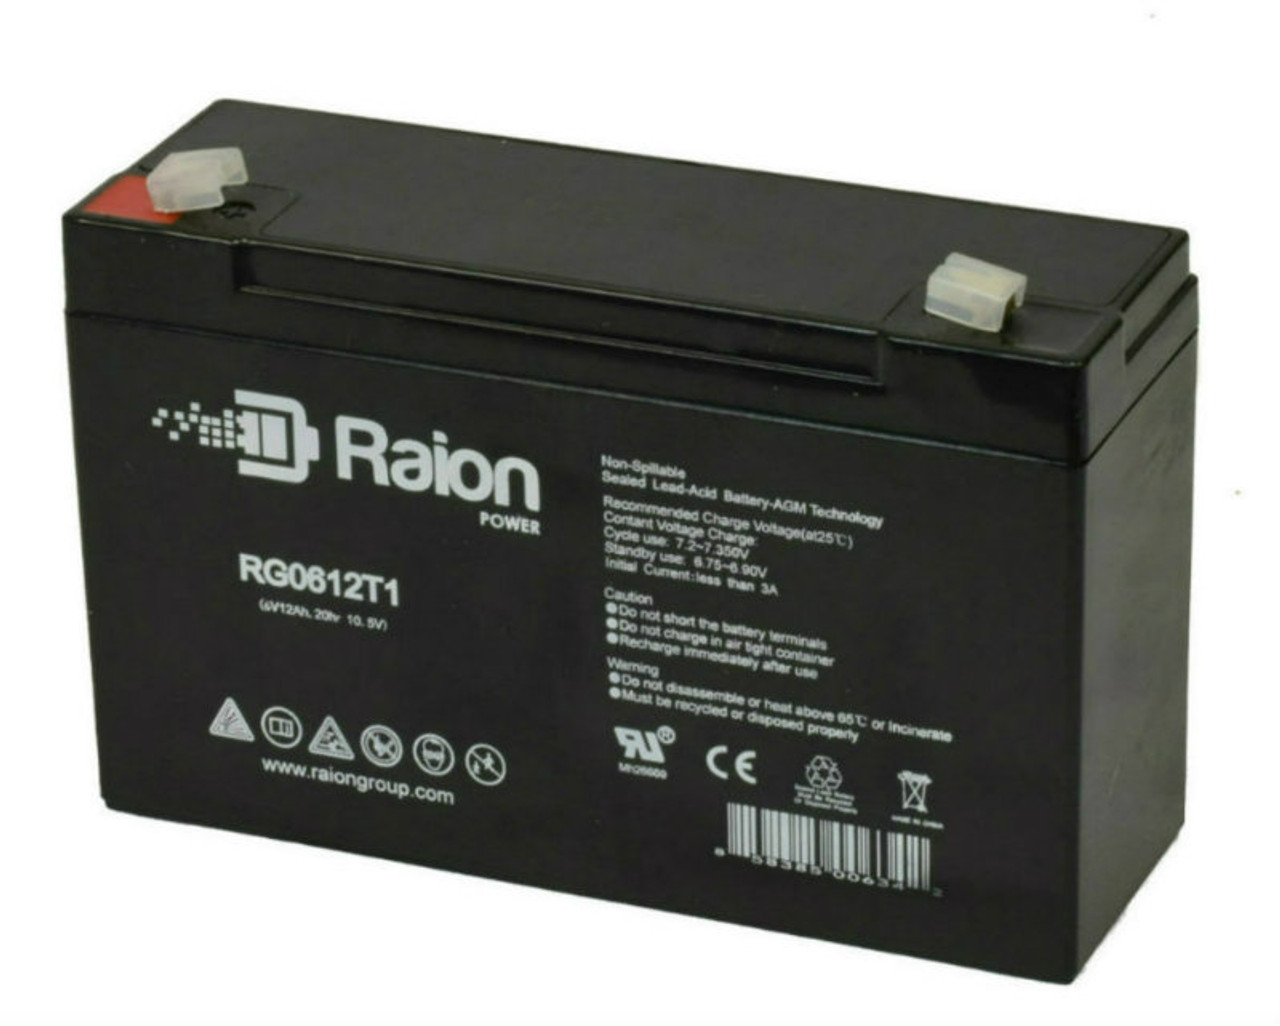 Raion Power RG06120T1 Replacement Battery Pack for ELS ELS C emergency light